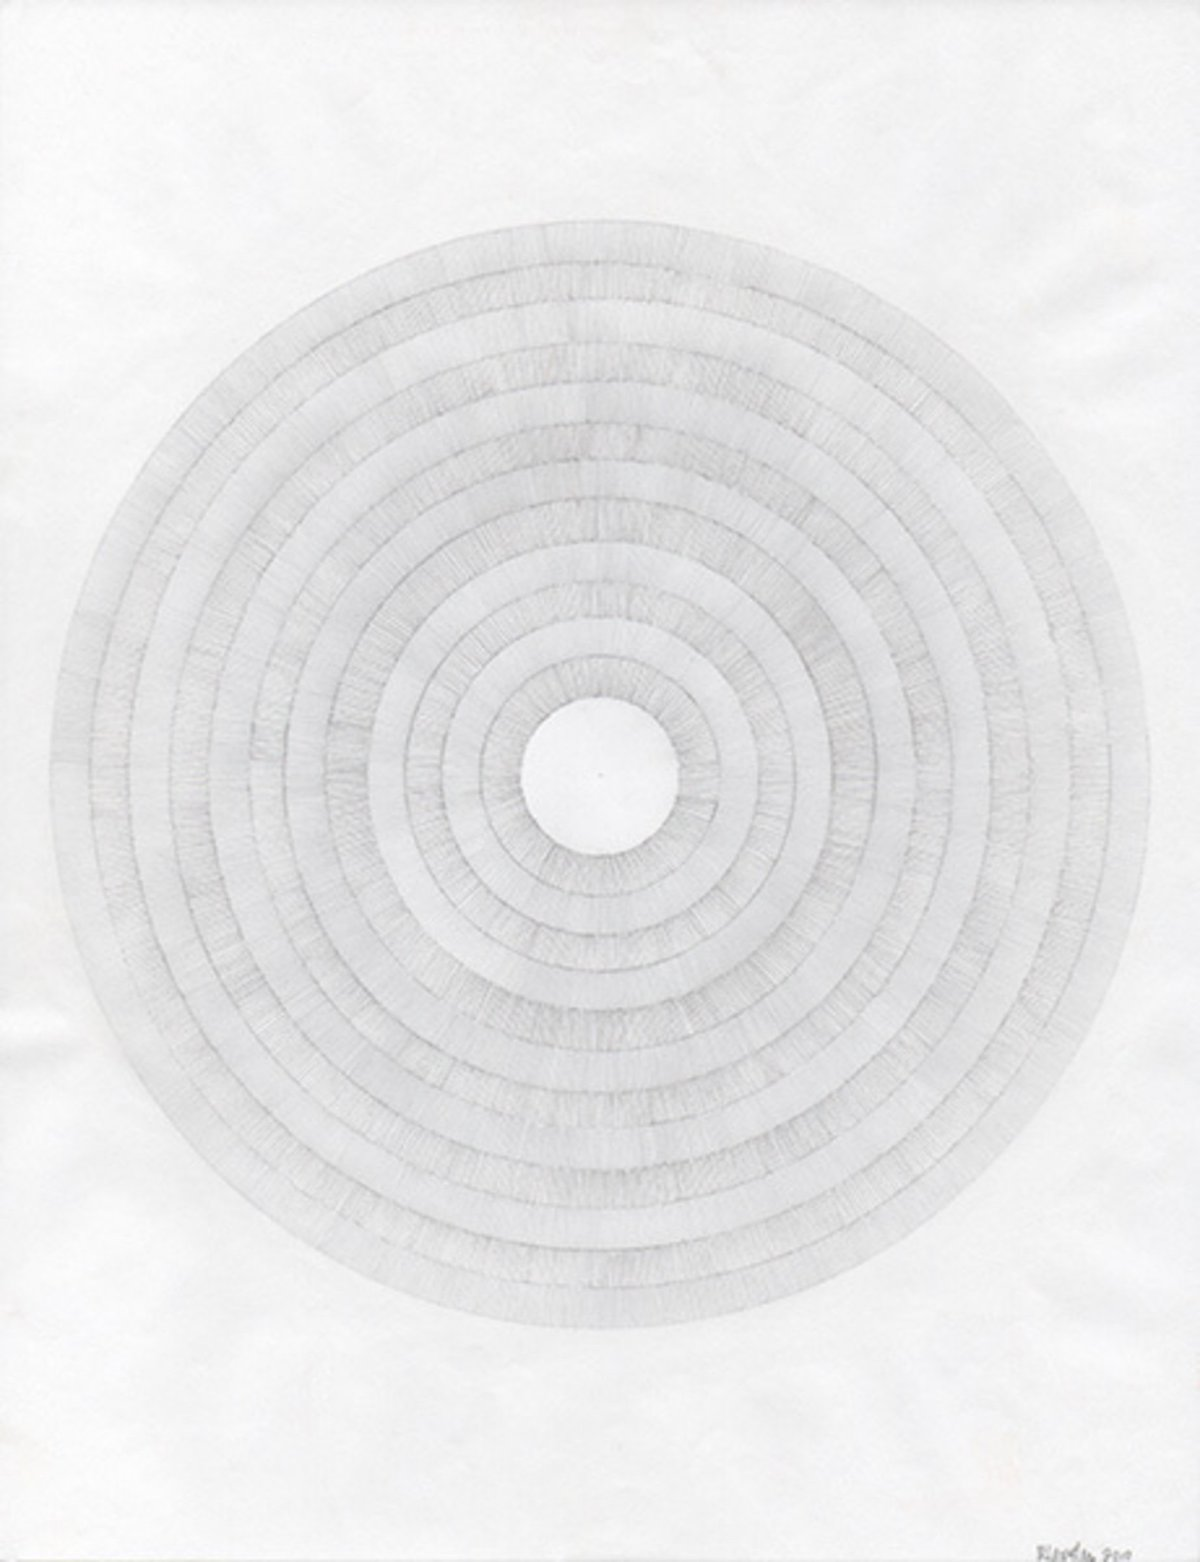 Robert Lansden, Untitled (Graphite Circles), 2010